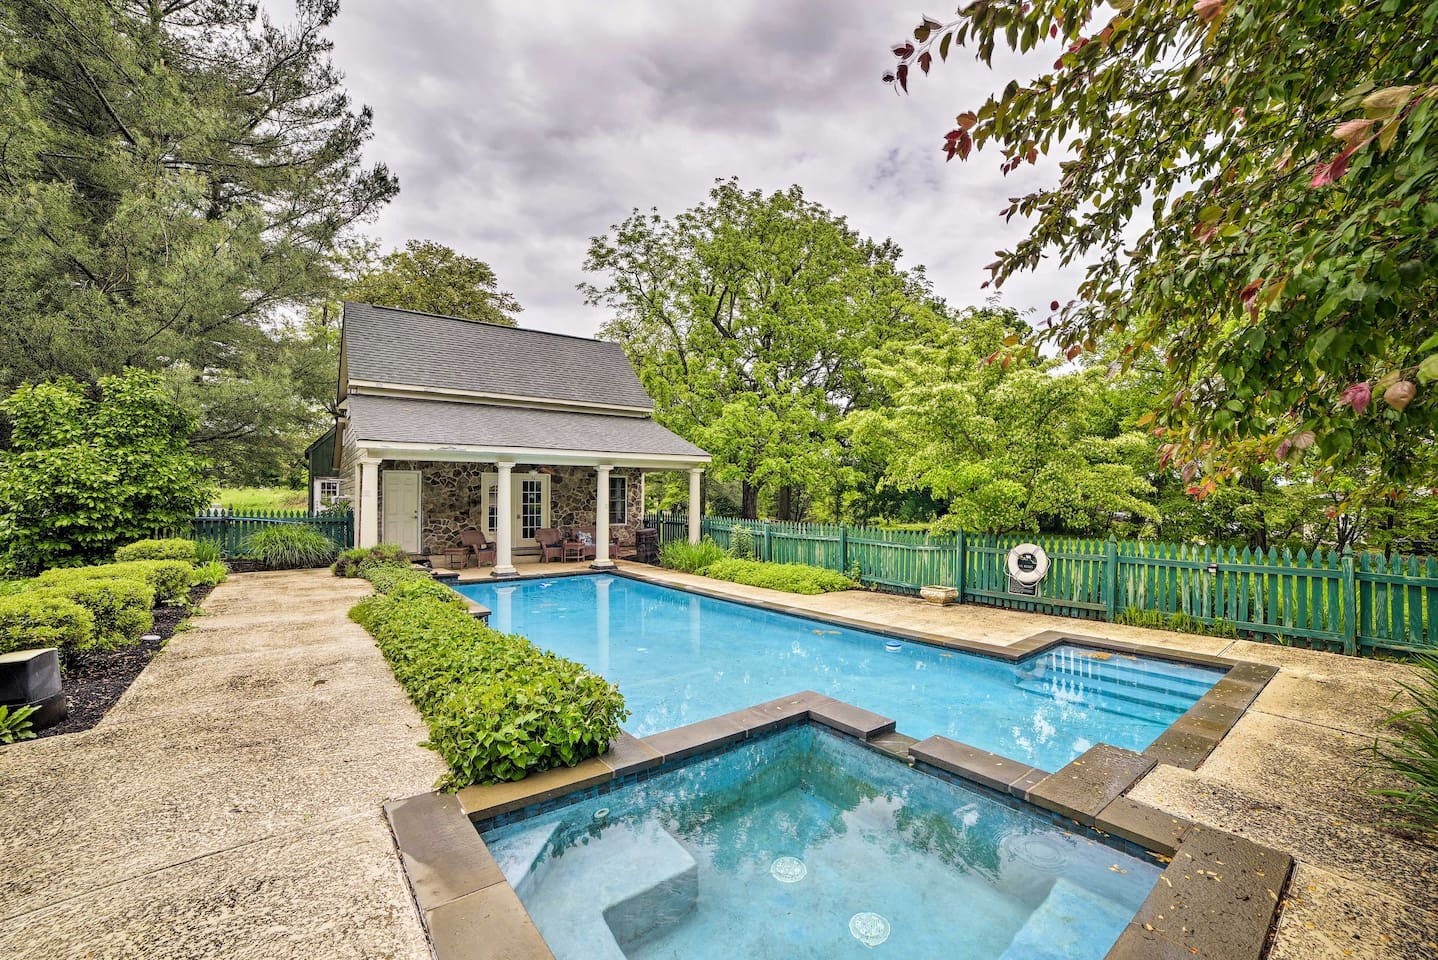 Go for a dip in the seasonal pool or hot tub!